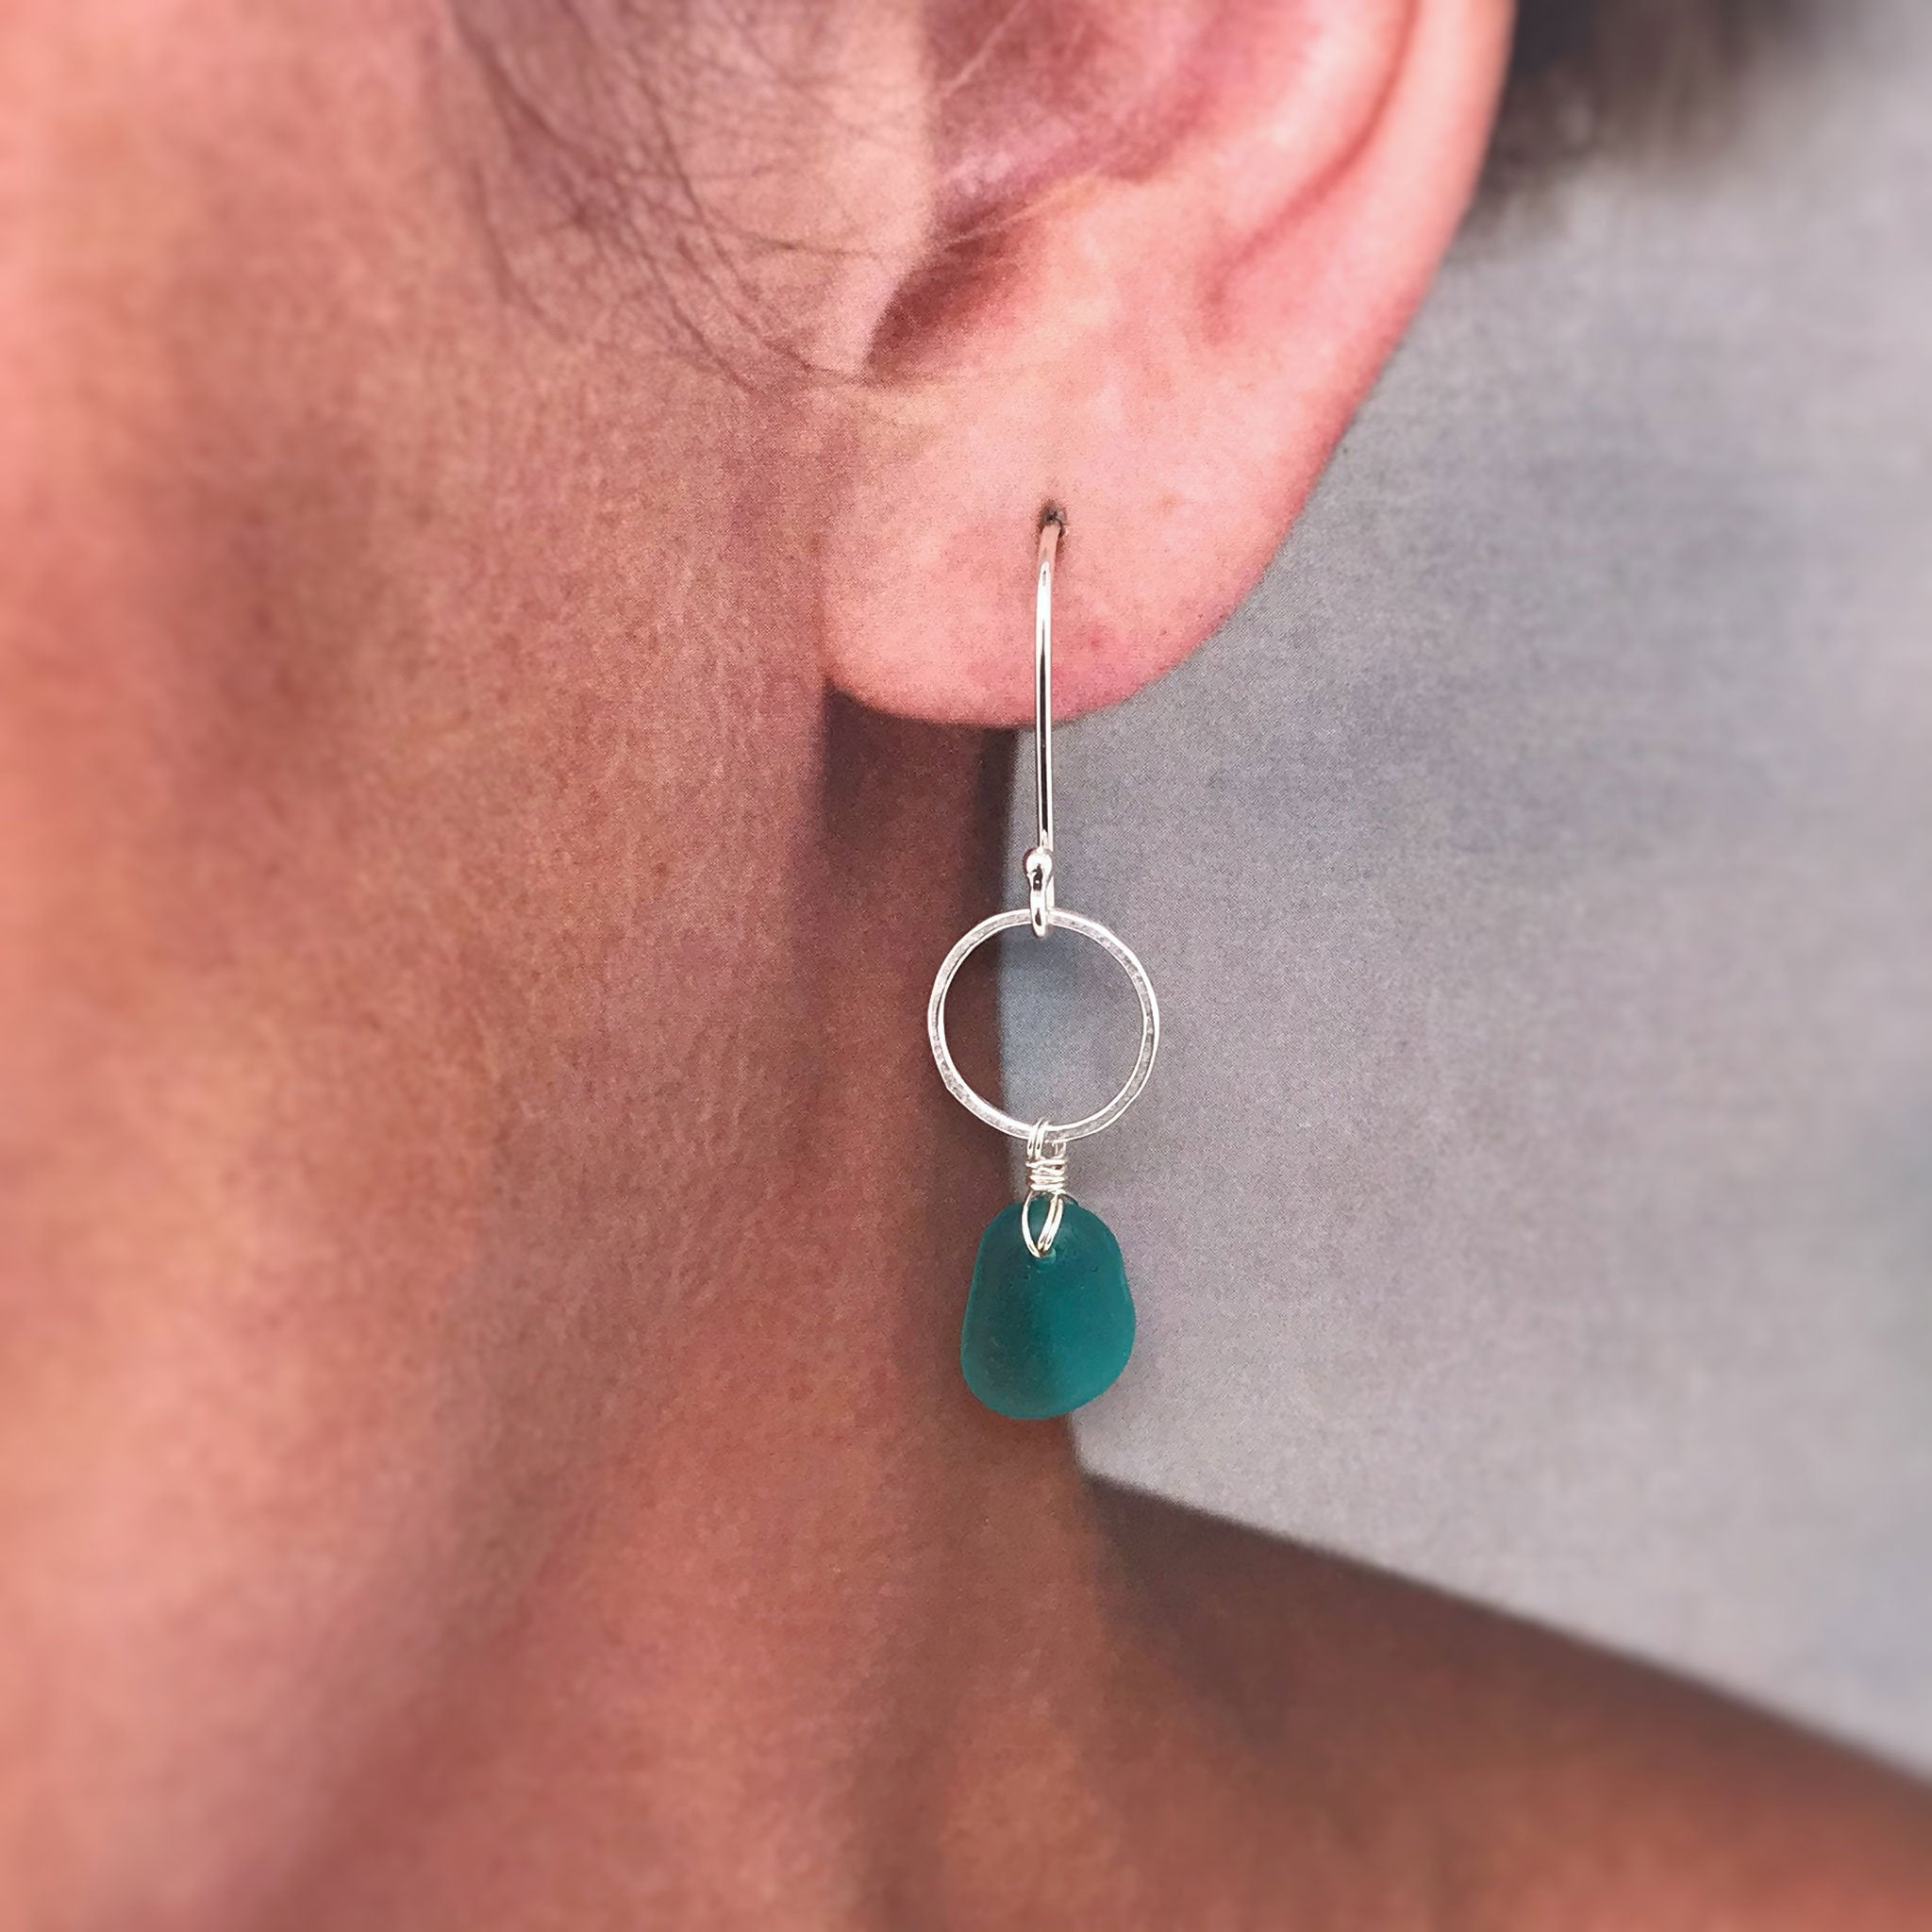 sterling silver earrings circle design with teal seaglass Kriket Broadhurst jewellery